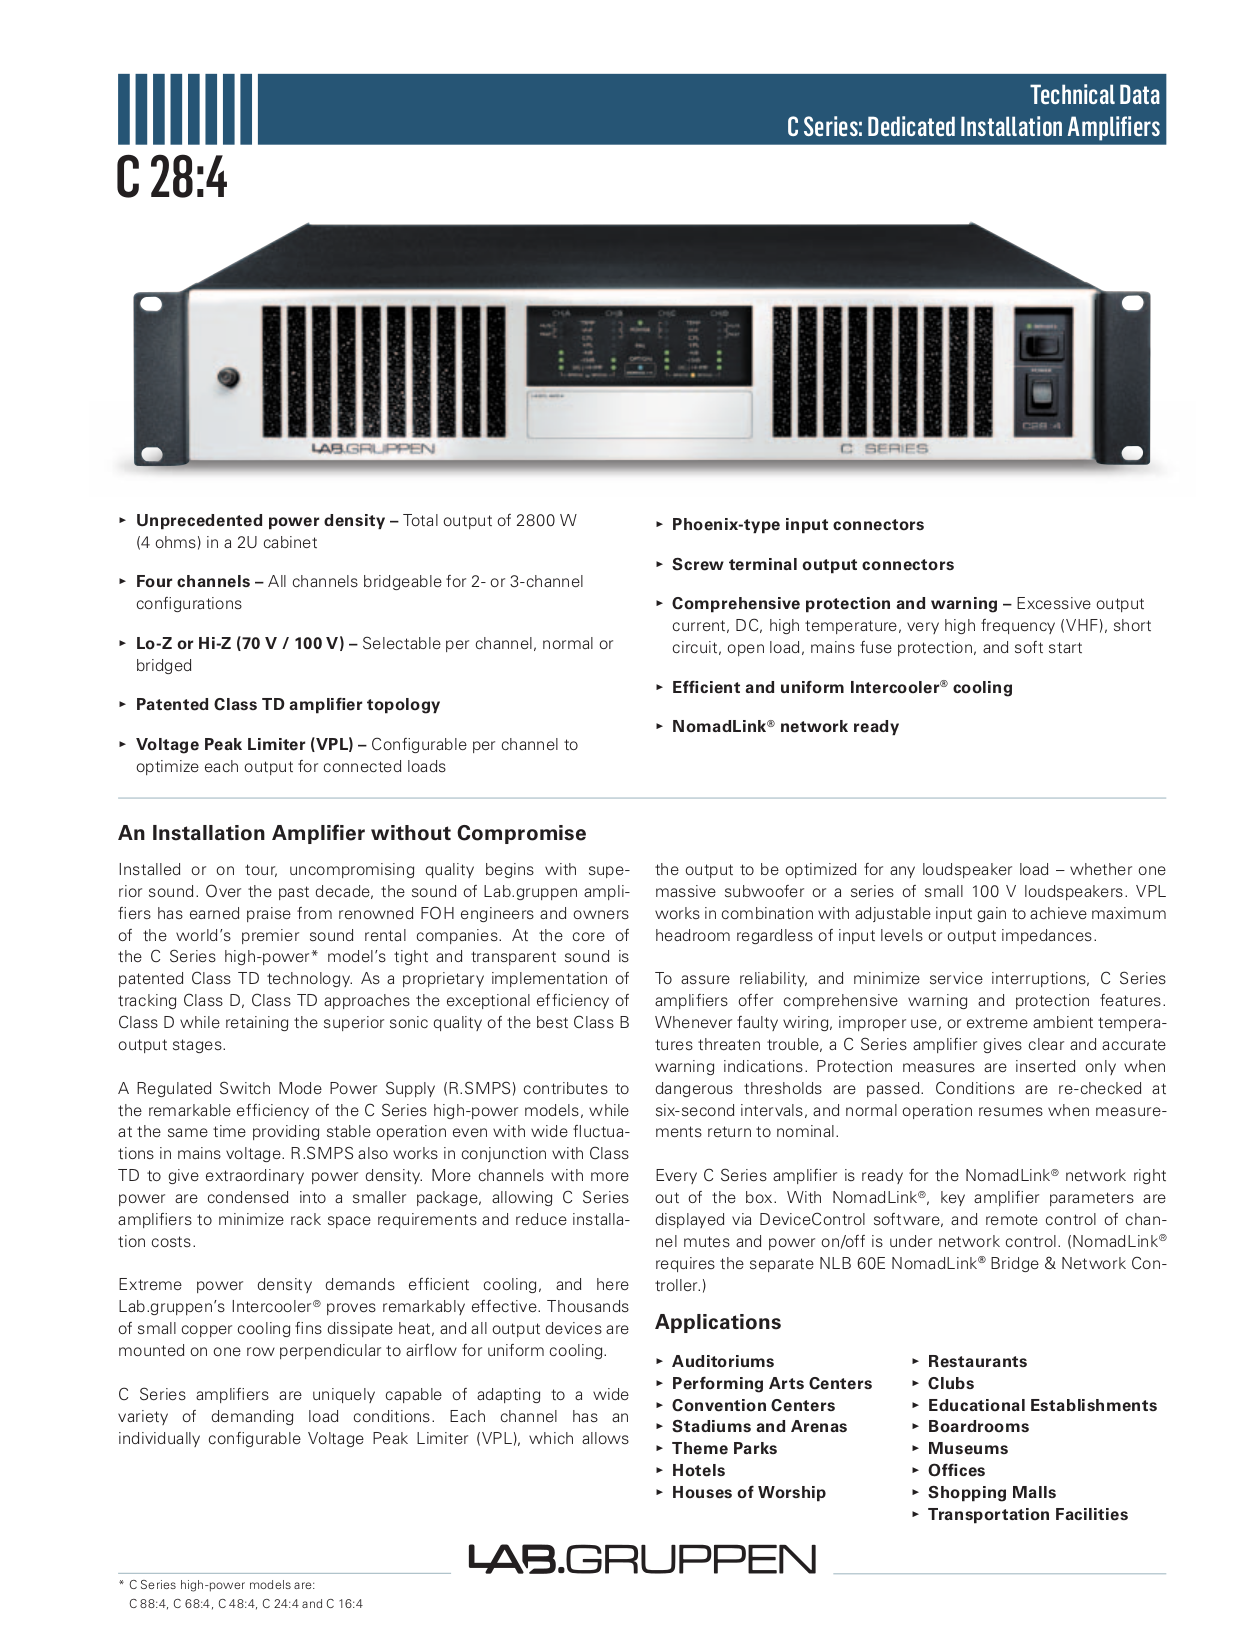 pdf for Lab.gruppen Amp C Series C 28 4 manual